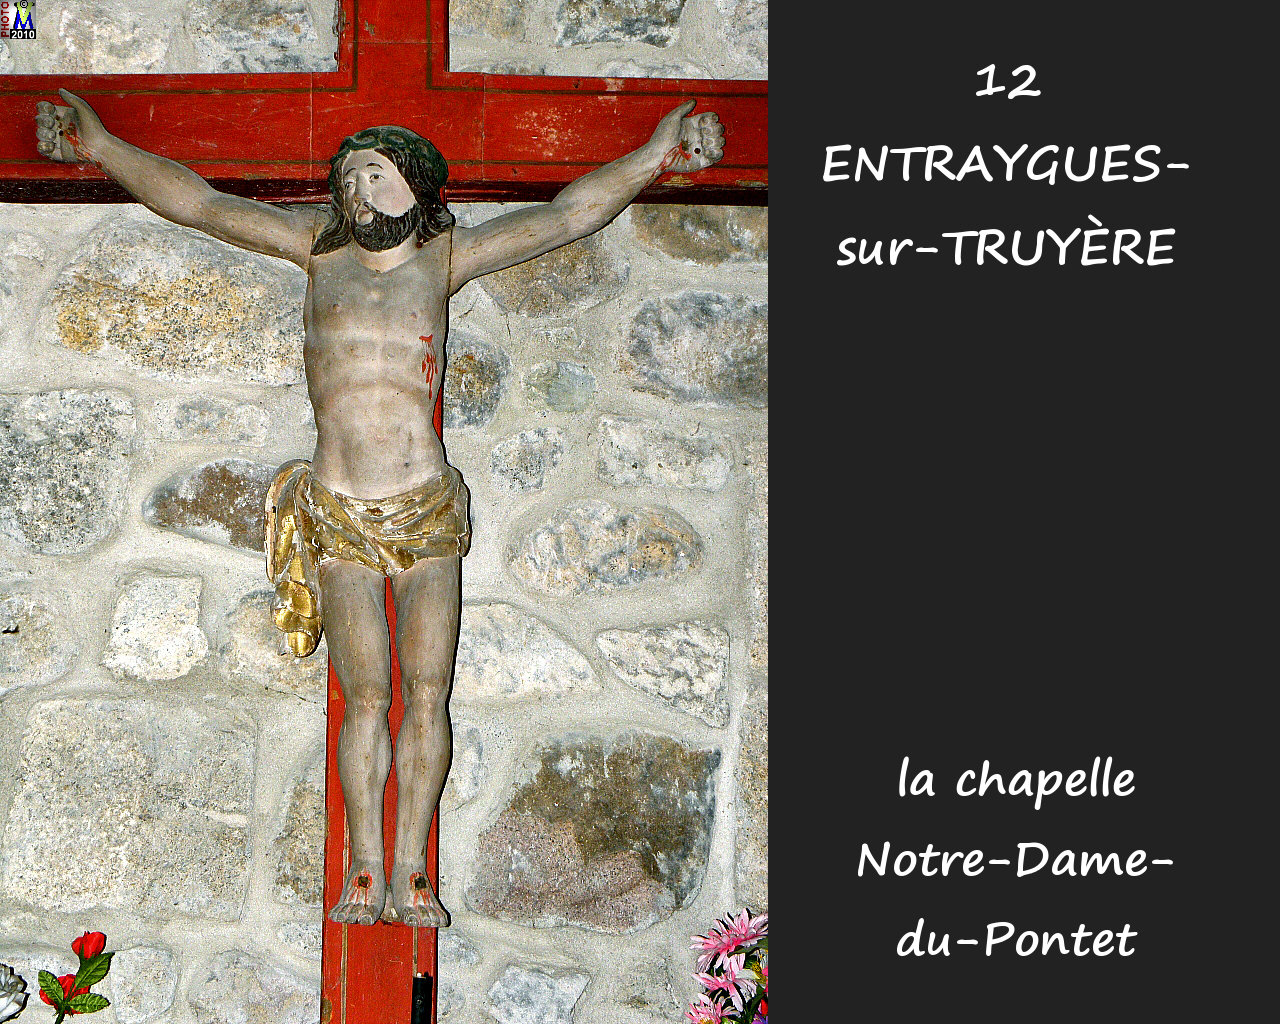 12ENTRAYGUES-TRUY_chapelle_232.jpg